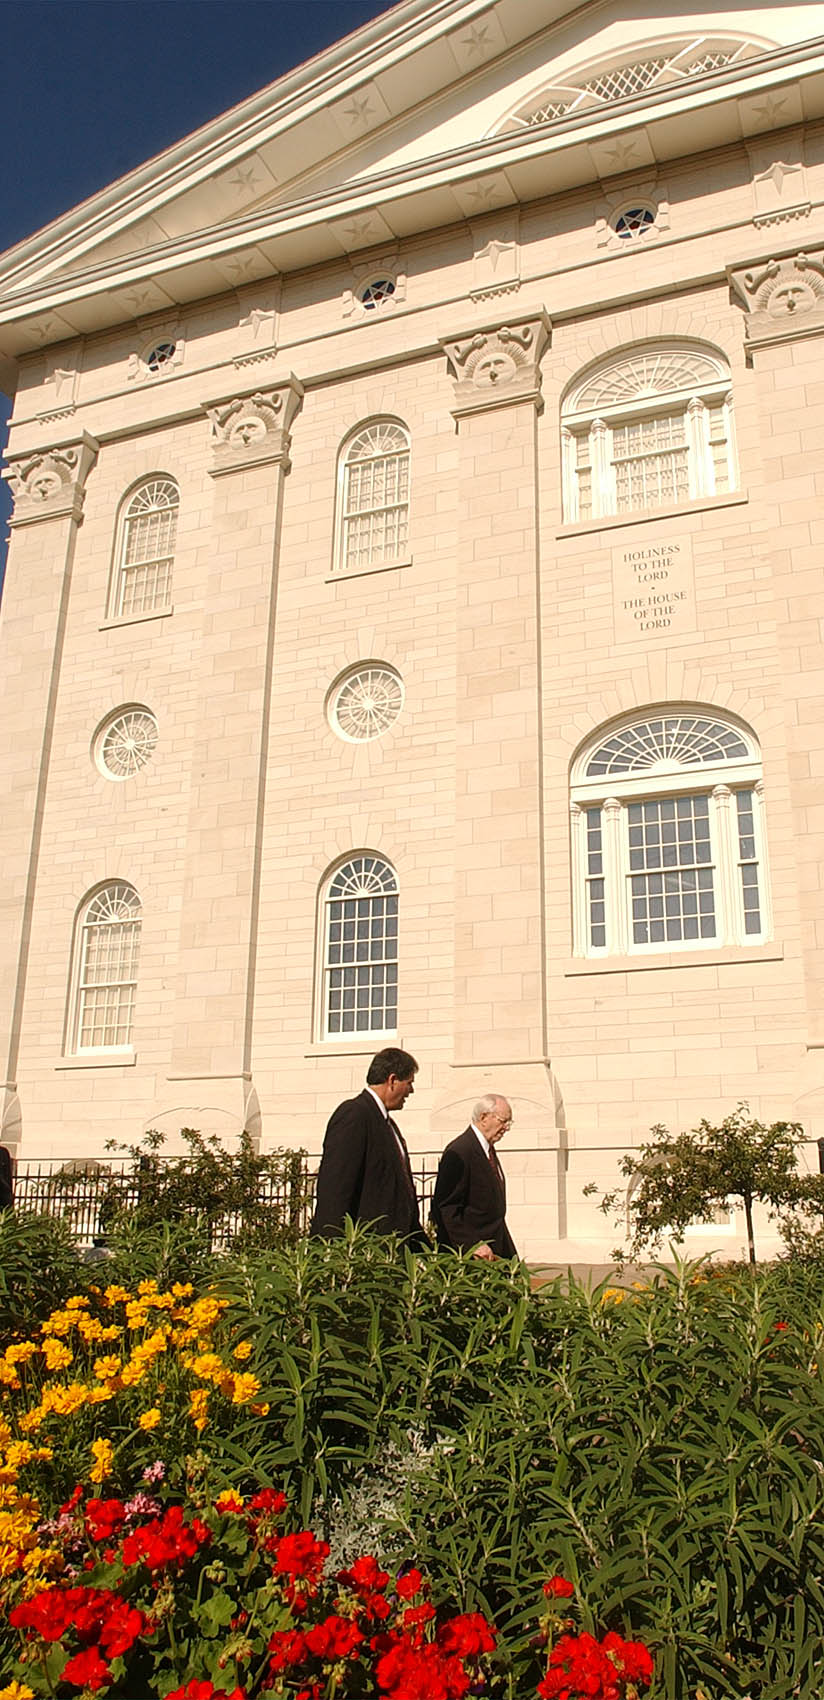 President Gordon B. Hinckley walks through the Nauvoo Illinois Temple grounds after the cornerstone ceremony June 27, 2002.